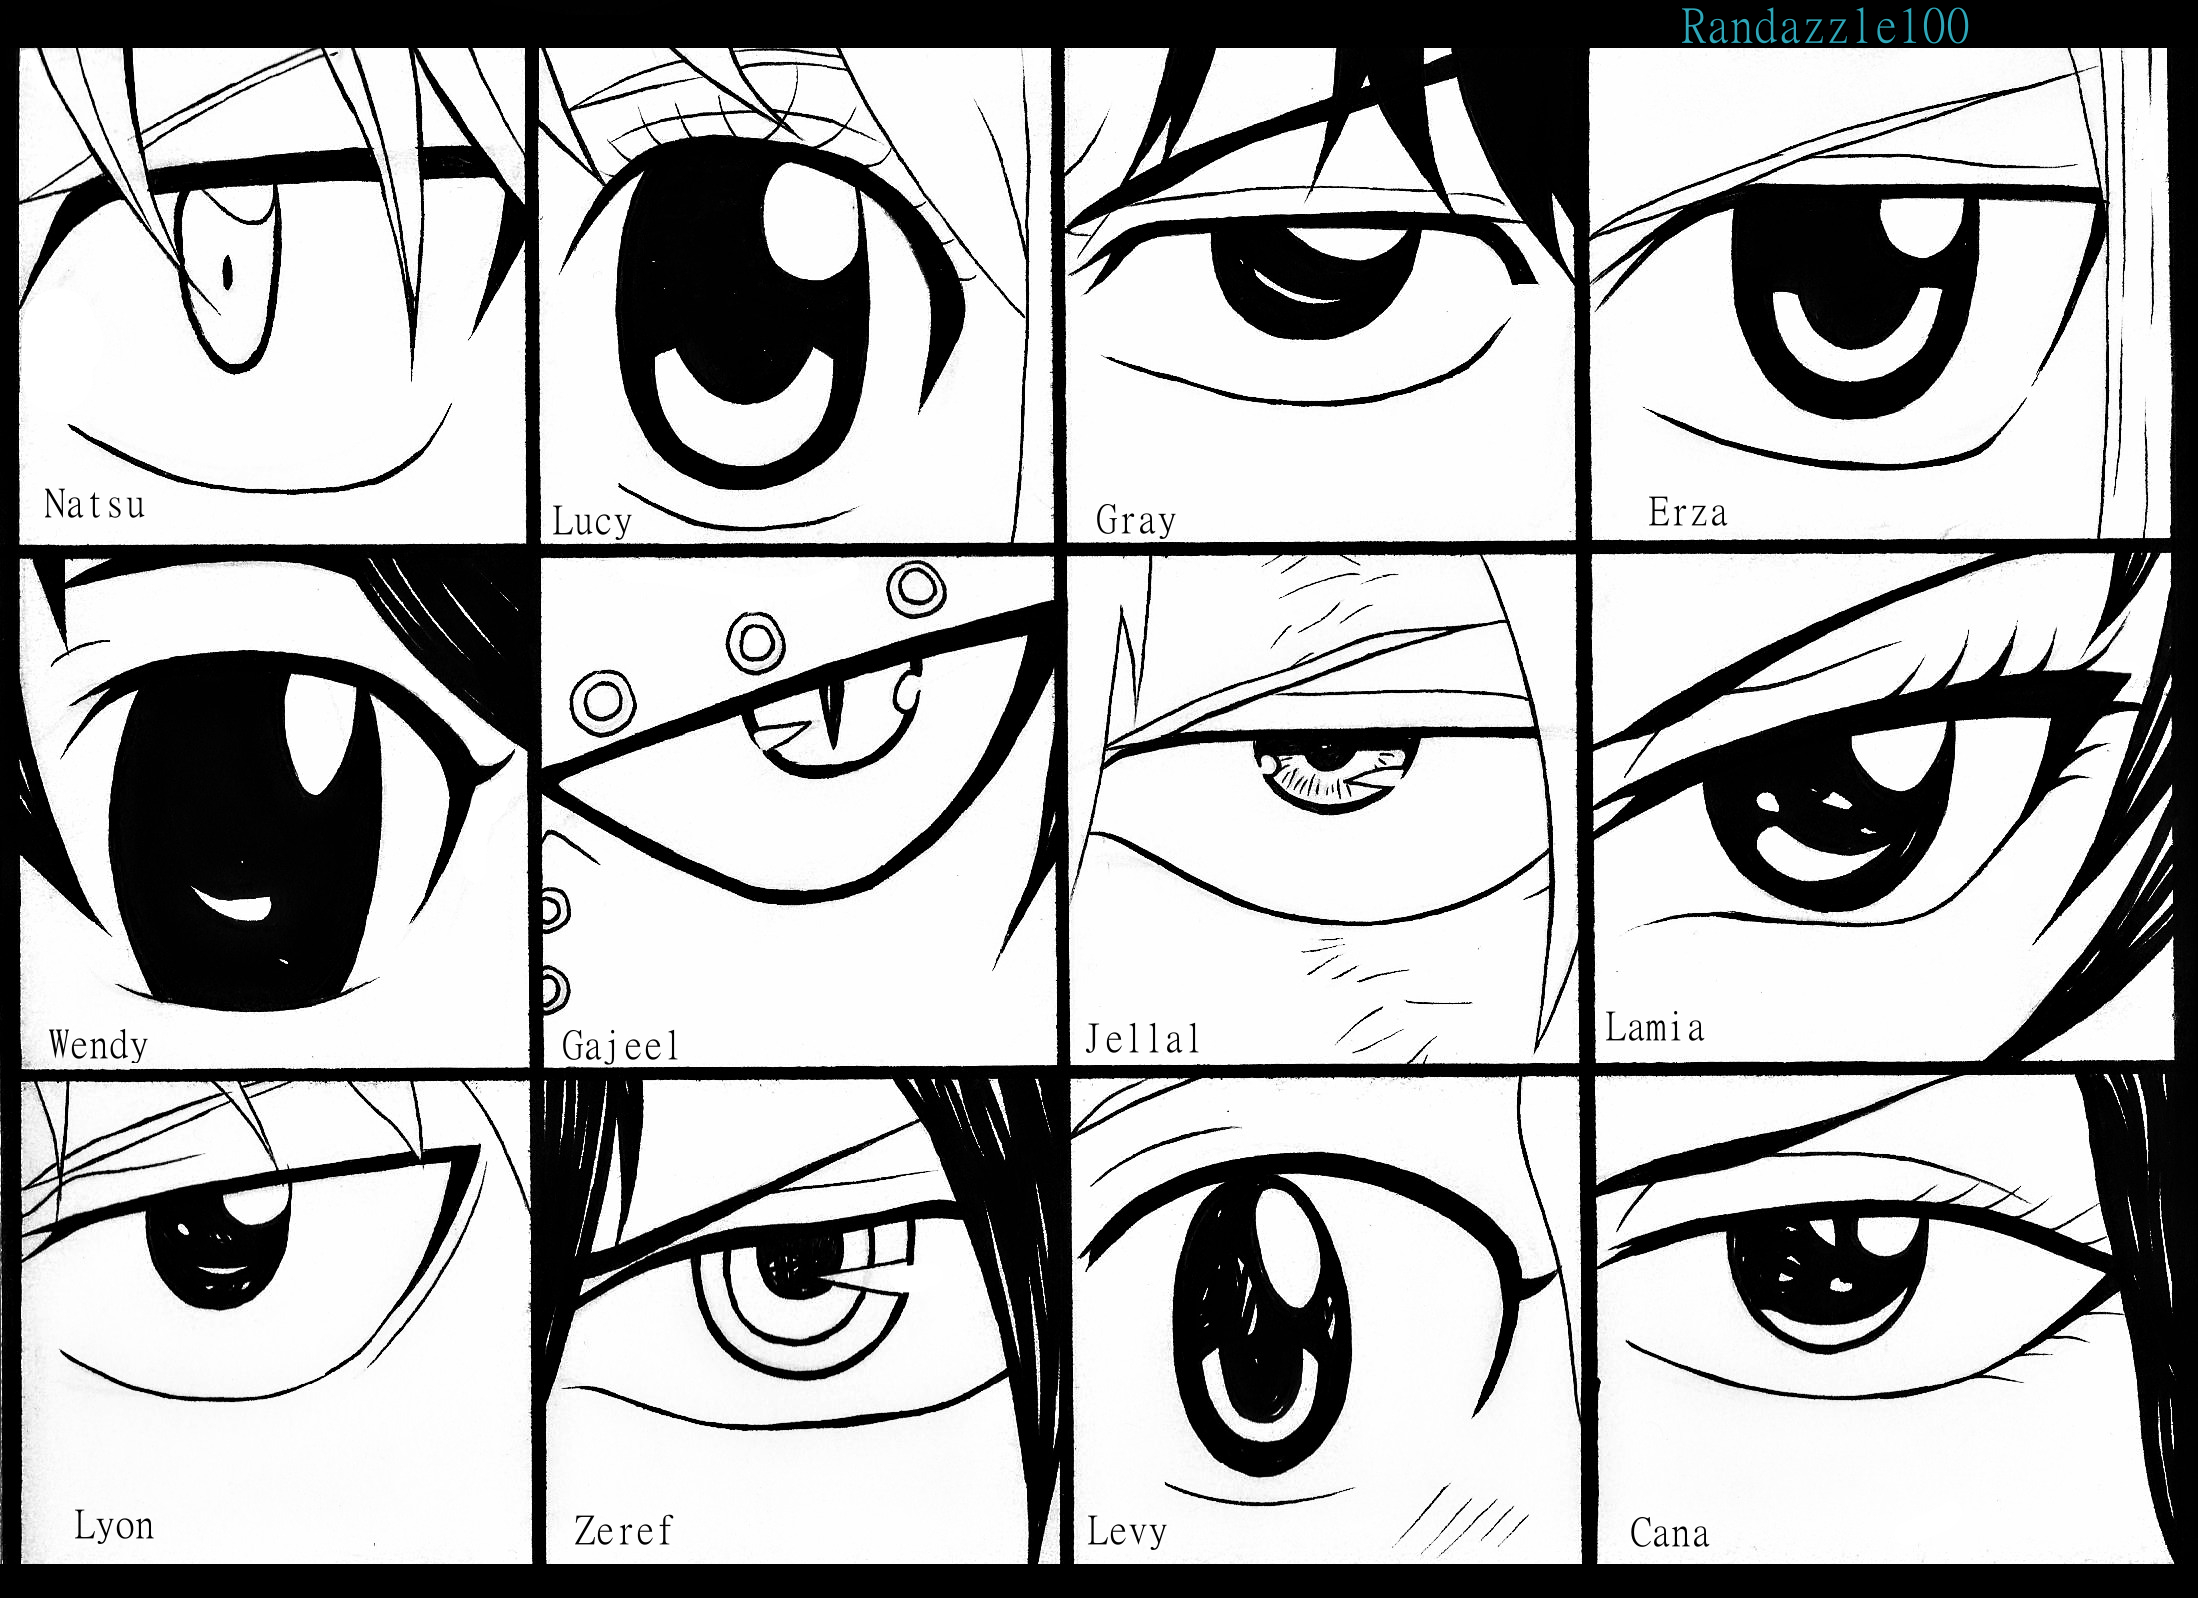 fairy_tail_eyes_by_randazzle100-d66jv3w